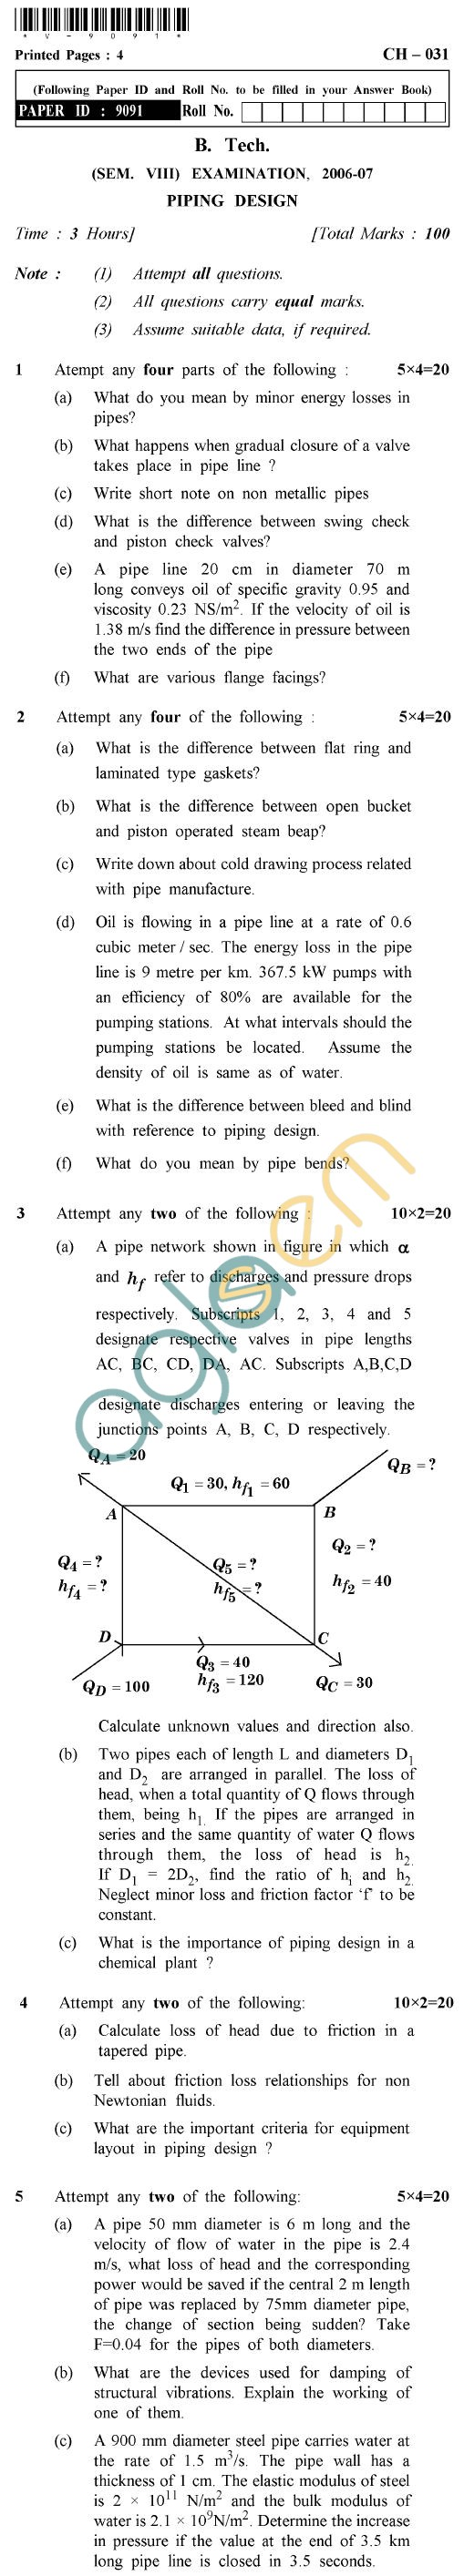 UPTU B.Tech Question Papers - CH-031 - Piping Design